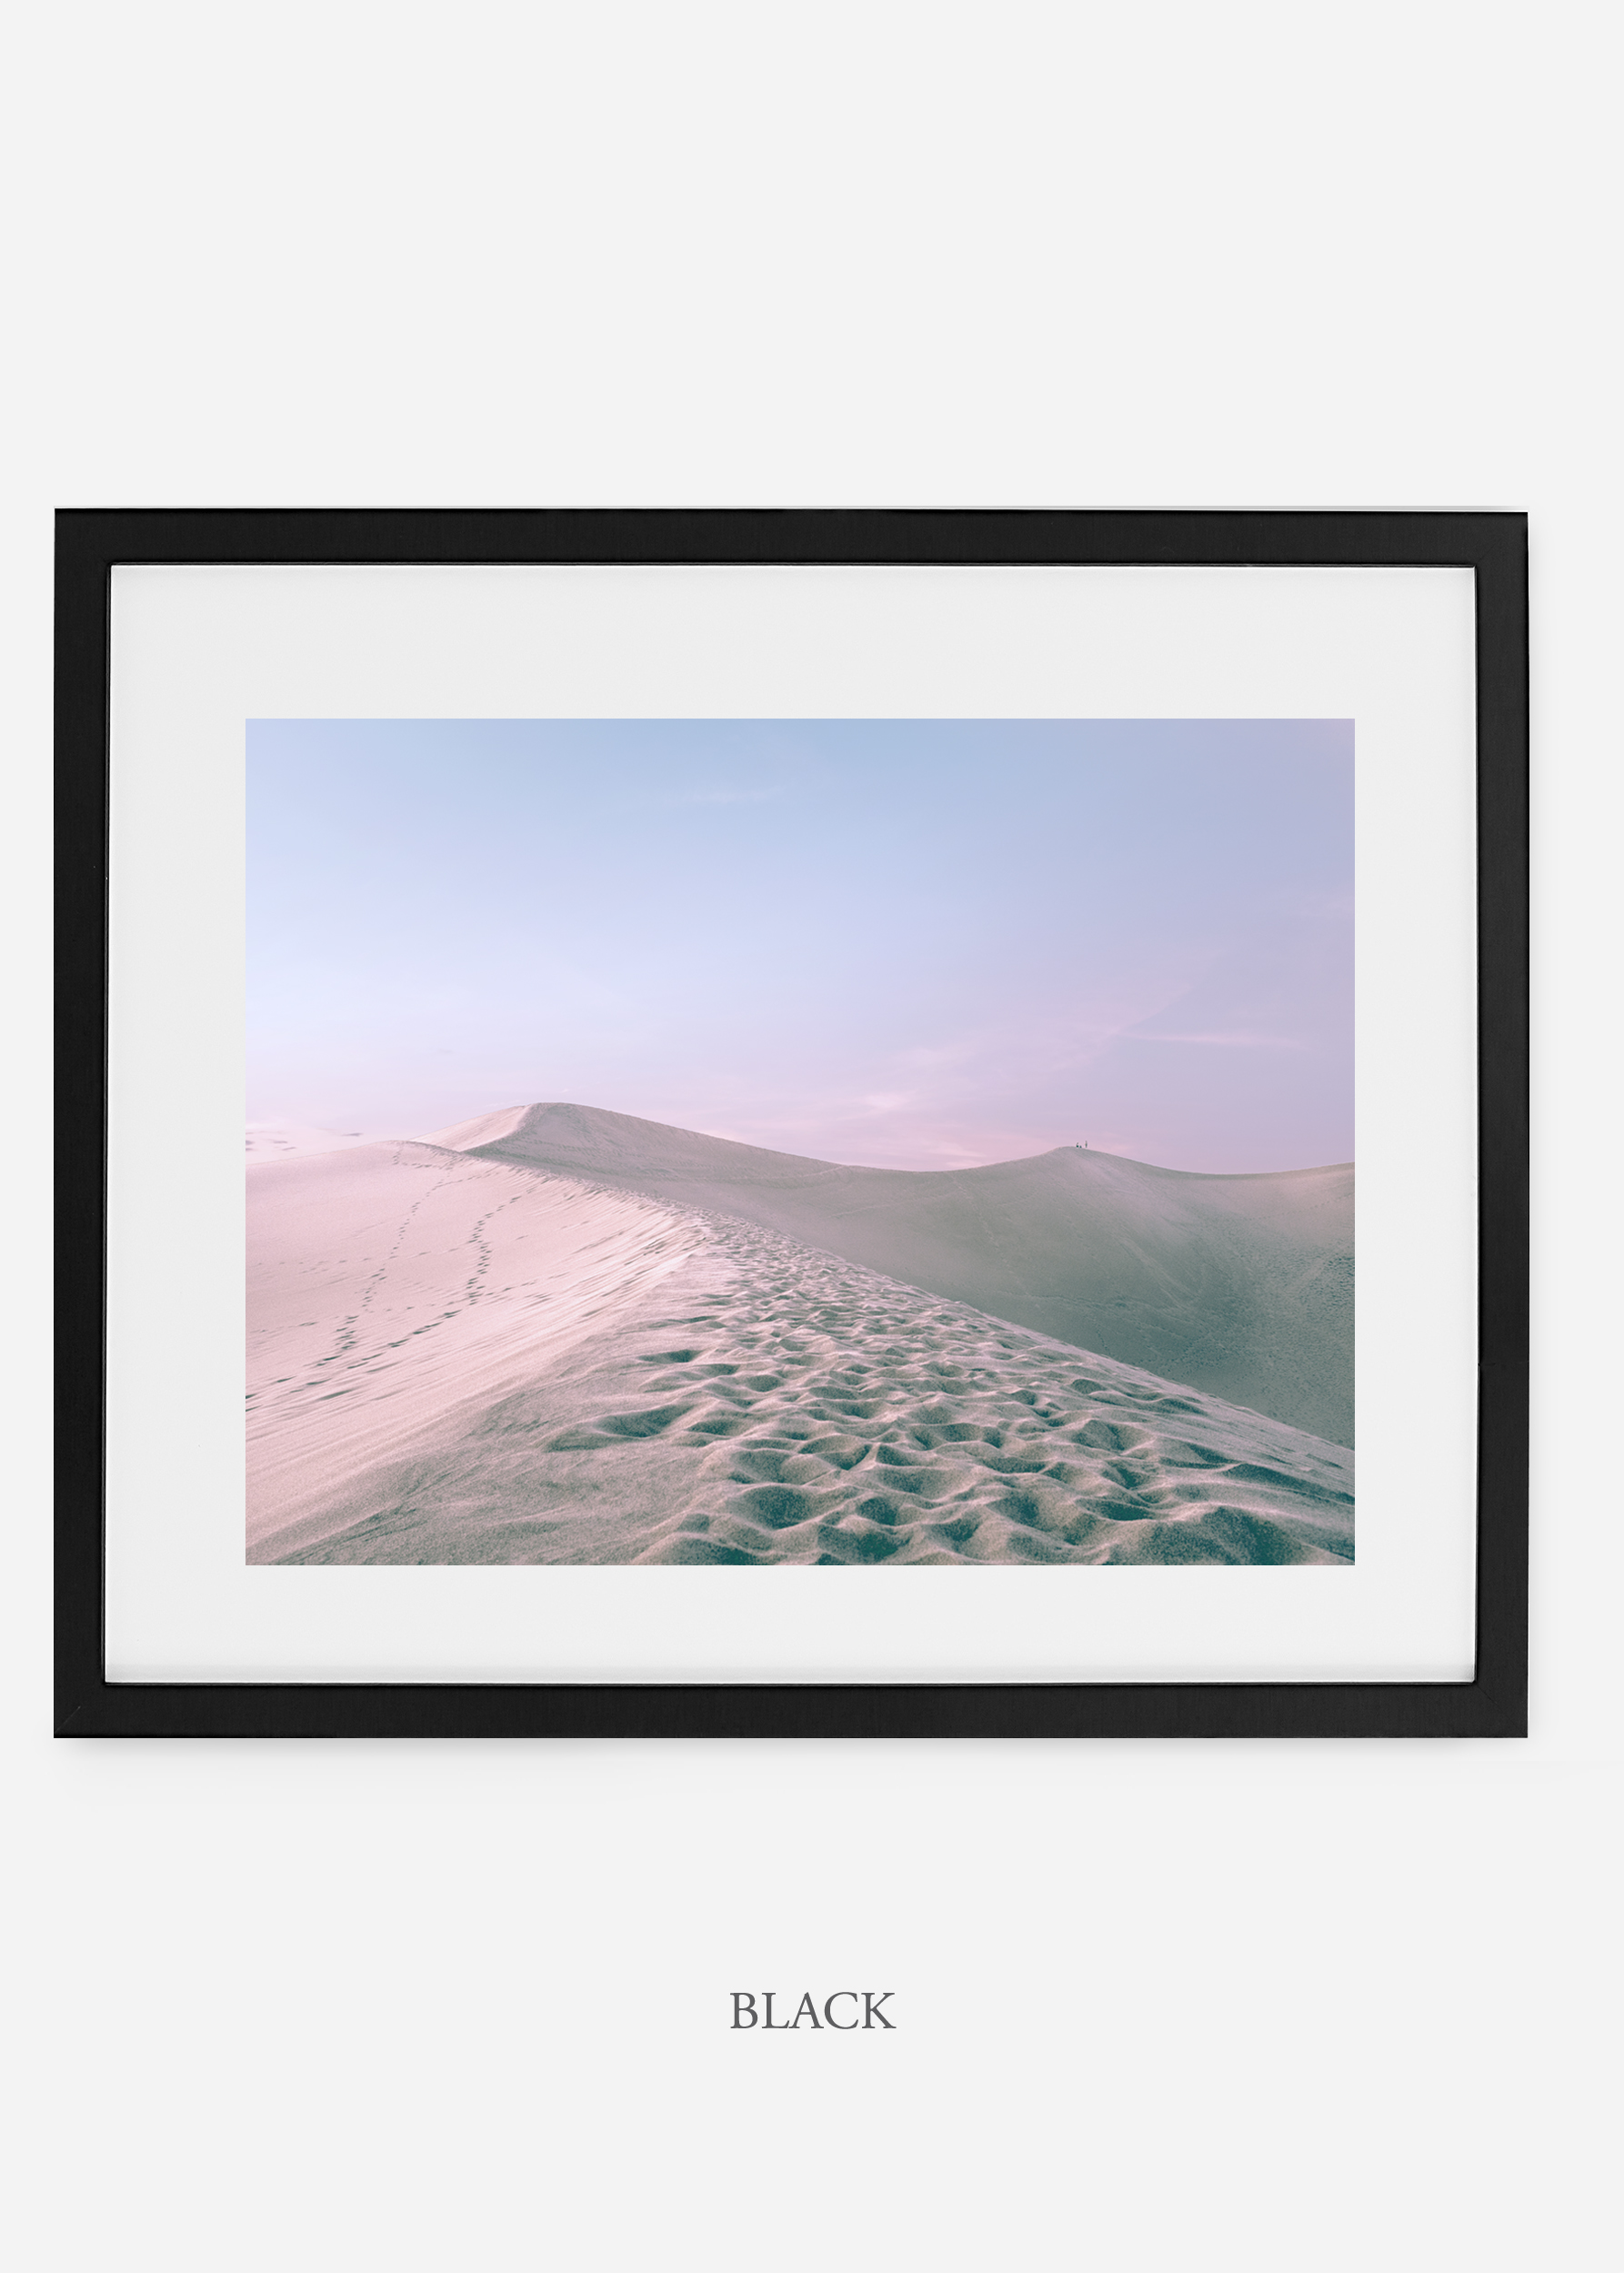 wildercalifornia_blackframe__deathvalley_16_cactus_art_interiordesign_blackandwhite.jpg